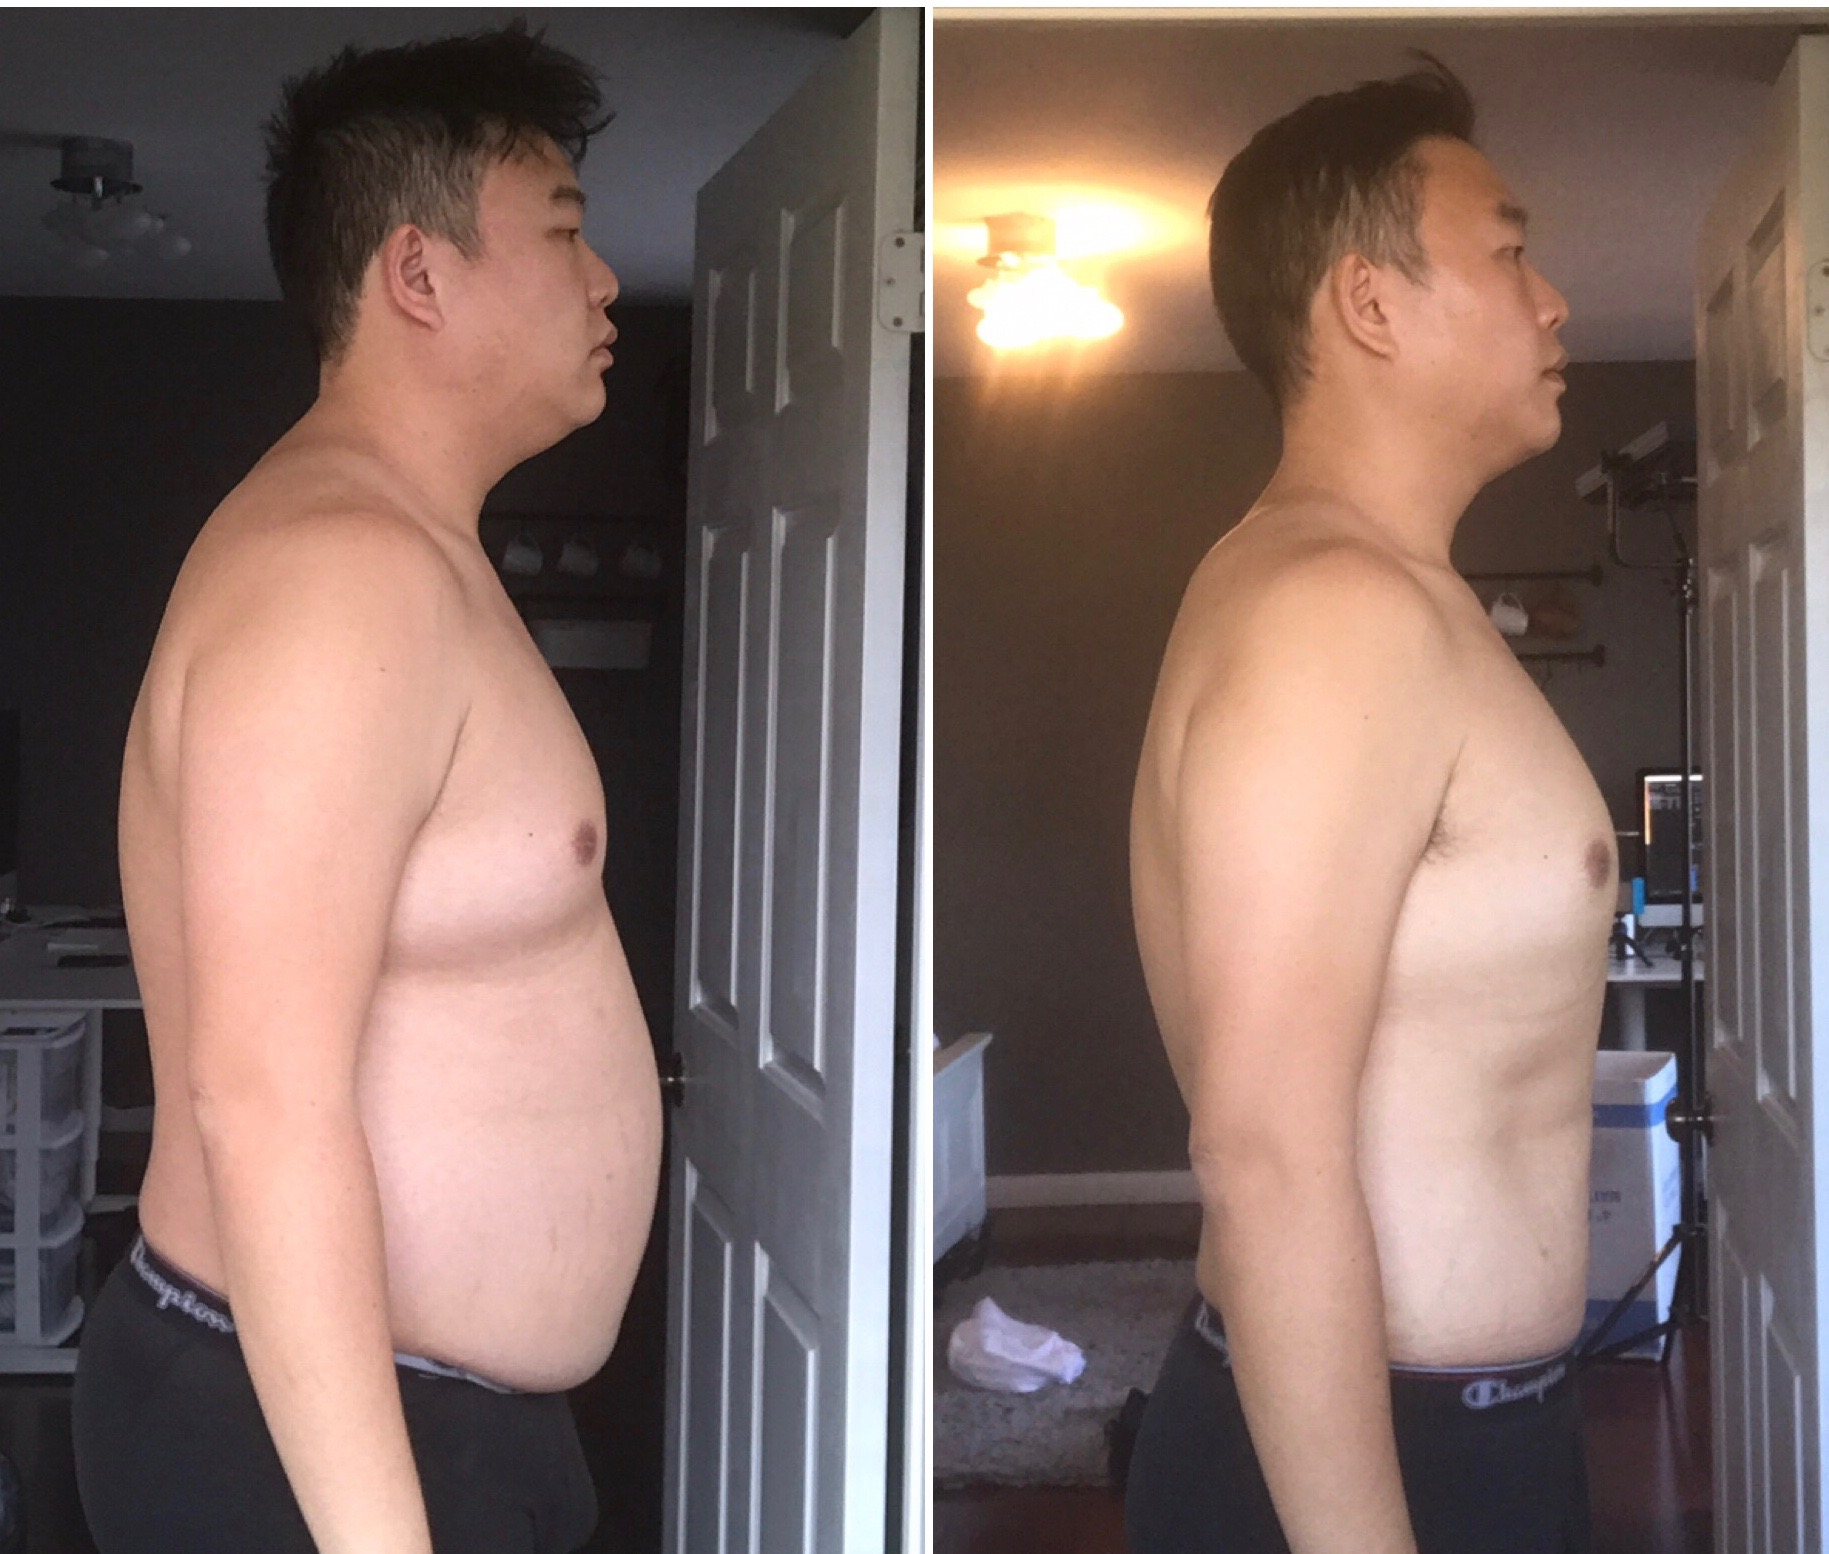 Through his hard work and consistent training/nutrition, David lost 60lbs.